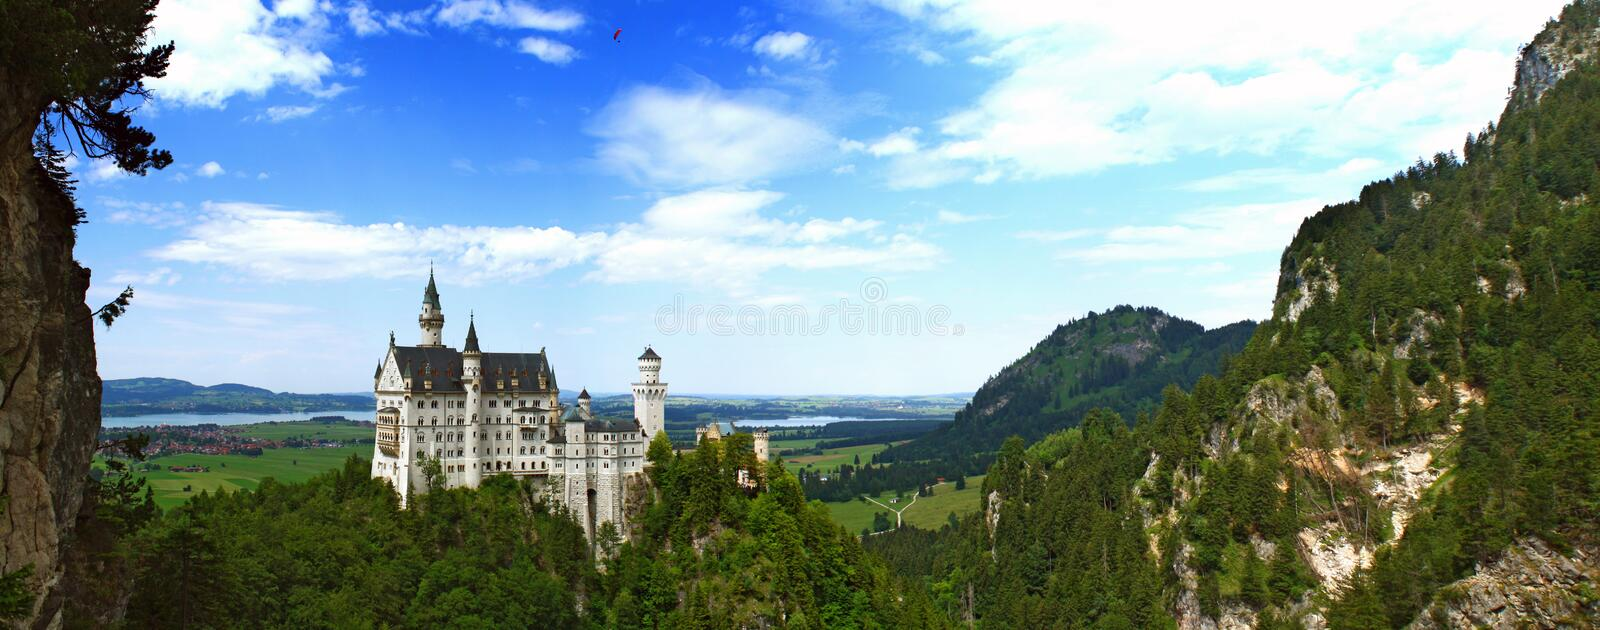 Scenic view of famous fairytale looking Neuschwanstein castle stock images